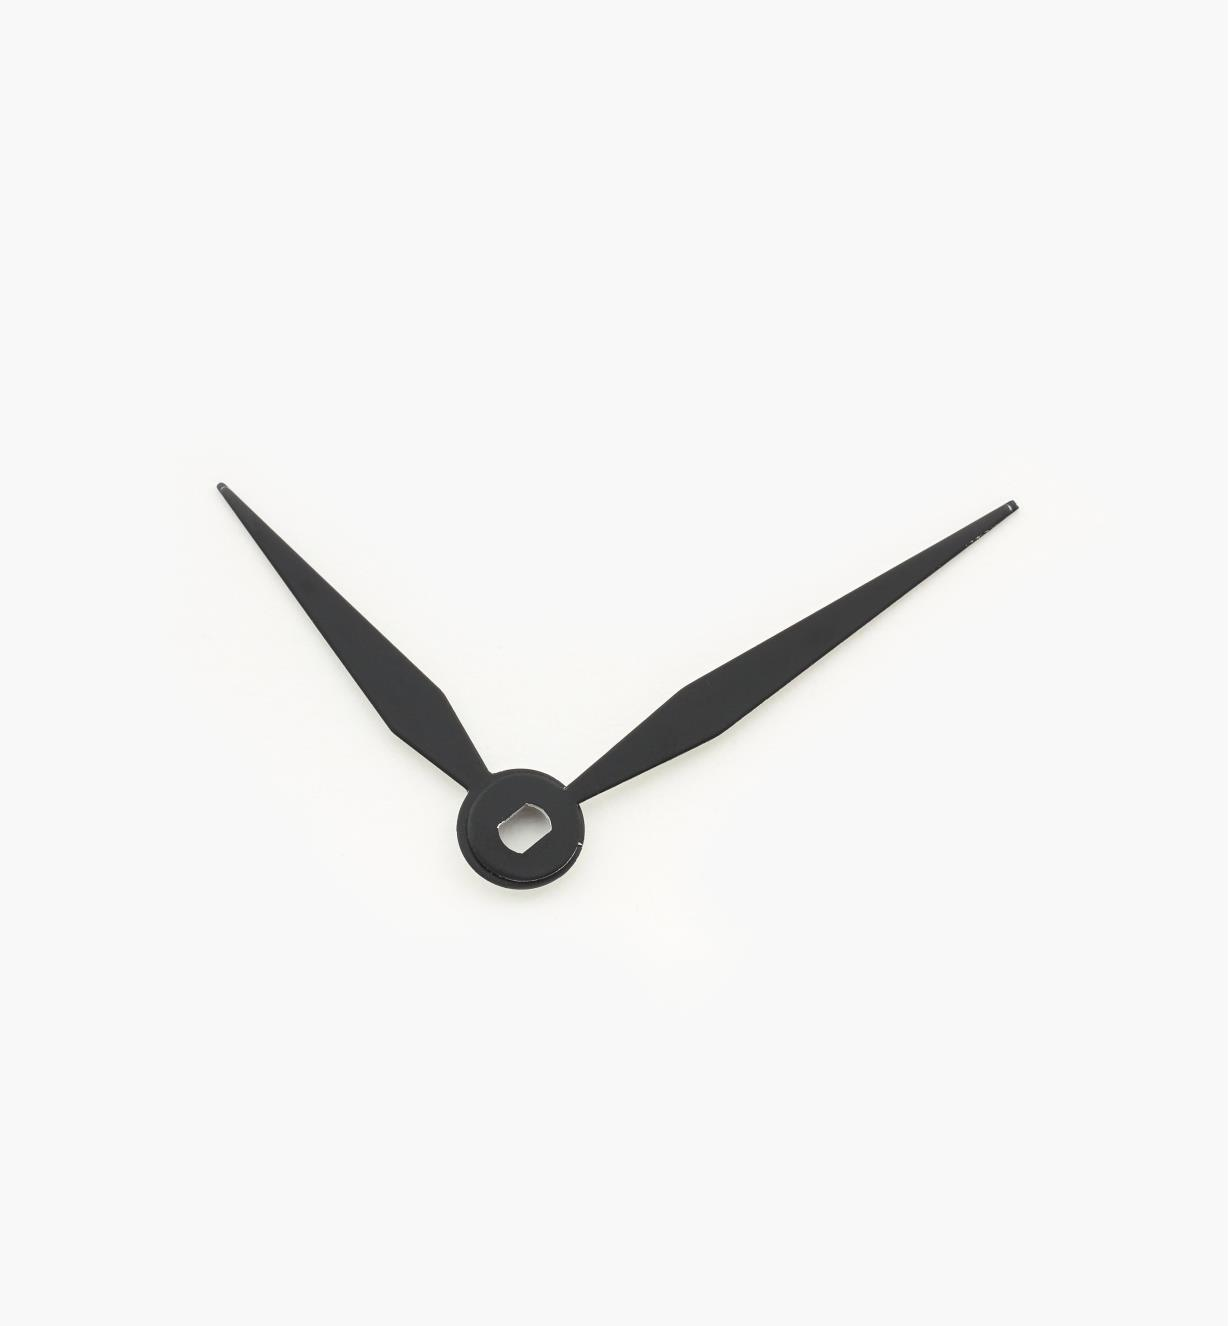 "46K0327 - 1 7/8"" Black CLock hands"